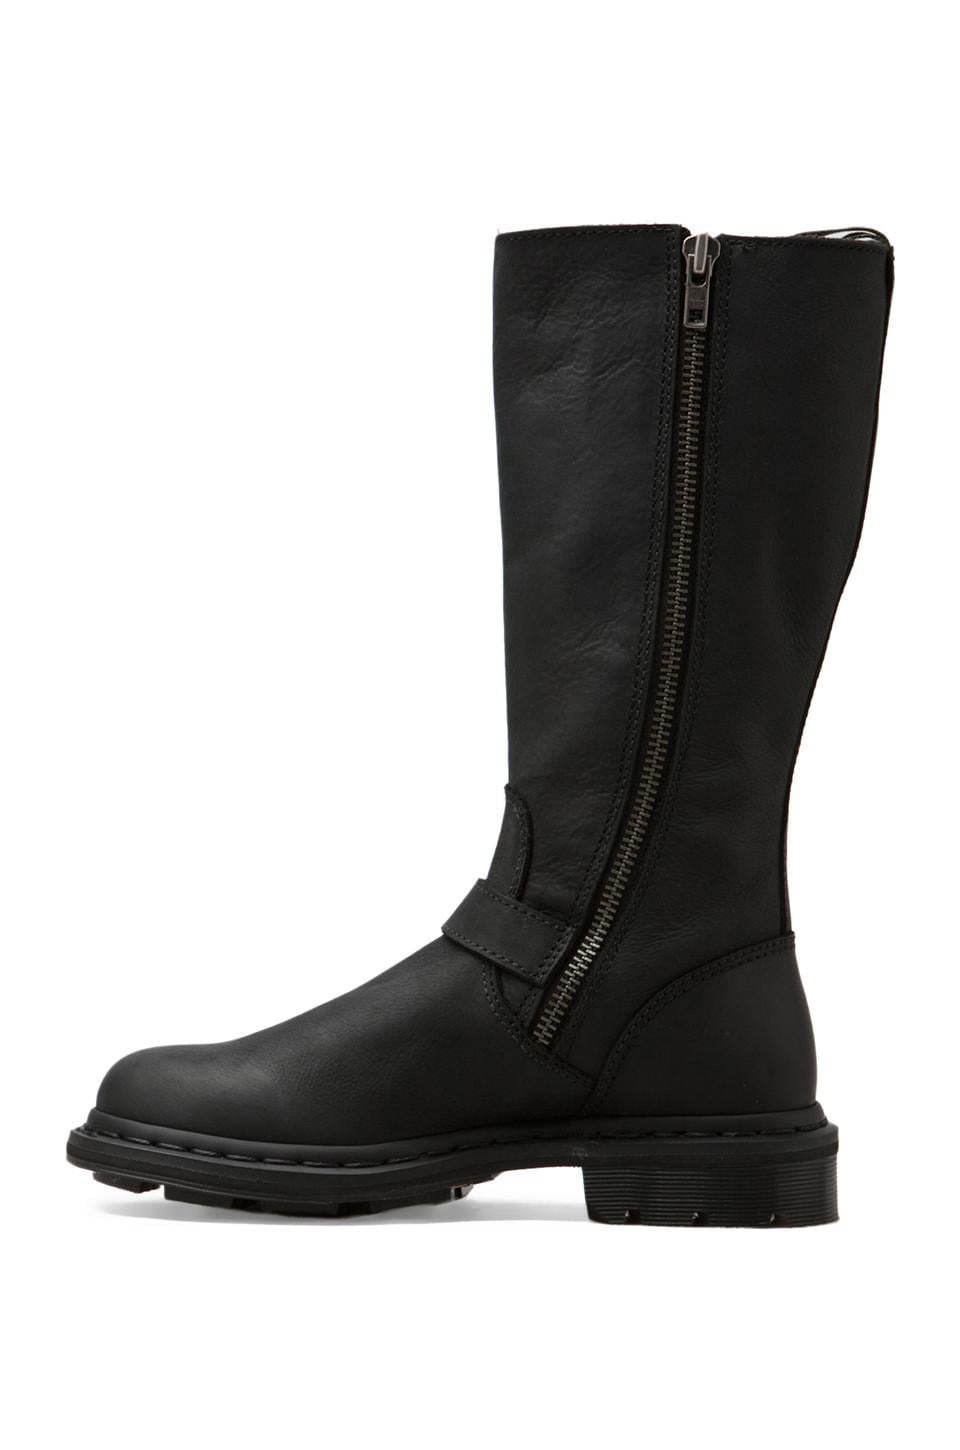 Dr. Martens Robin Tall Biker Boot in Black